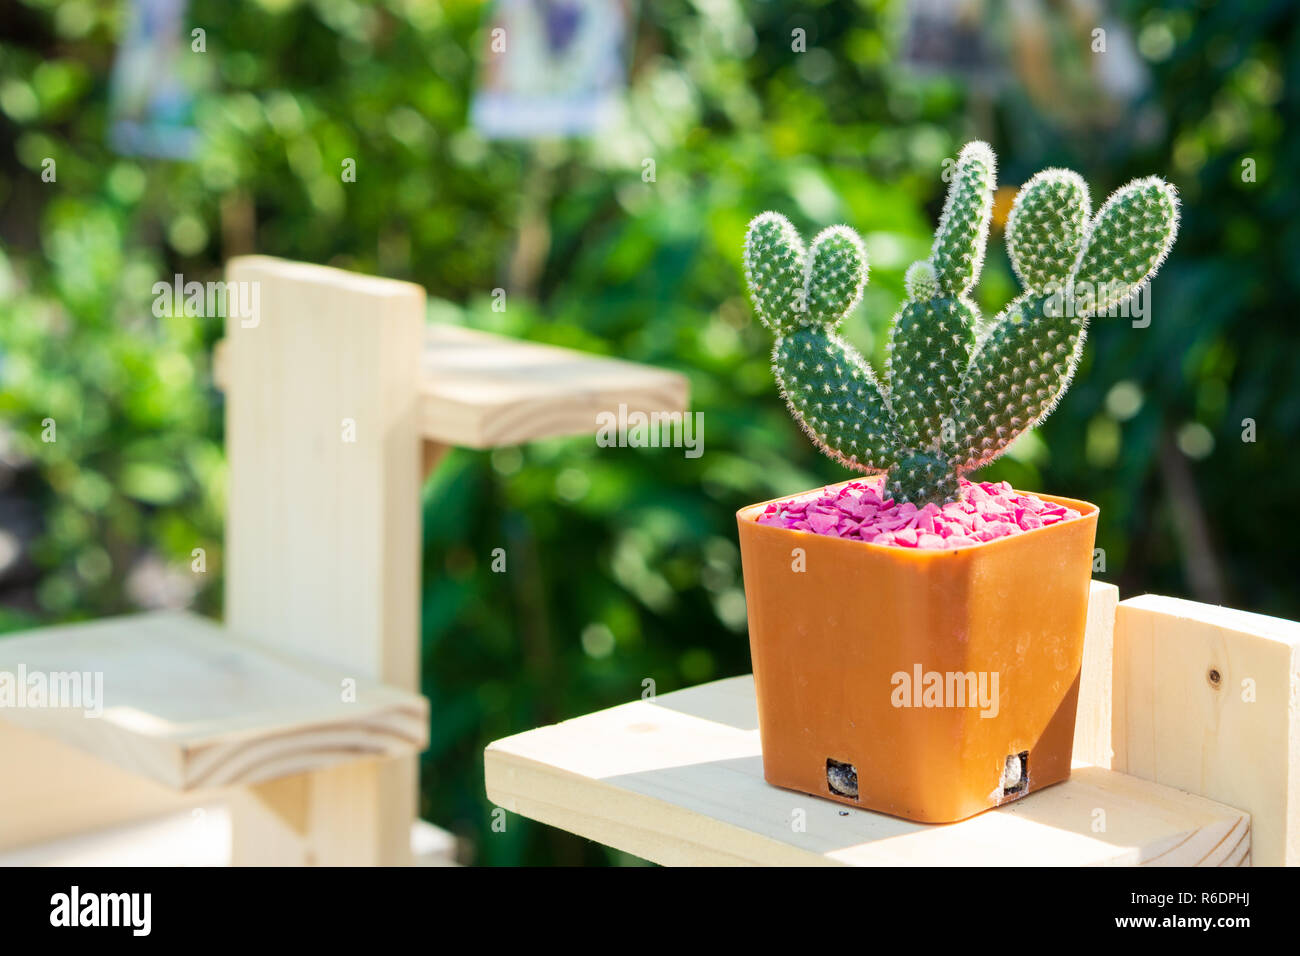 Mobilier Exterieur Fleuriste Tiny Flower Pot Photos Tiny Flower Pot Images Alamy